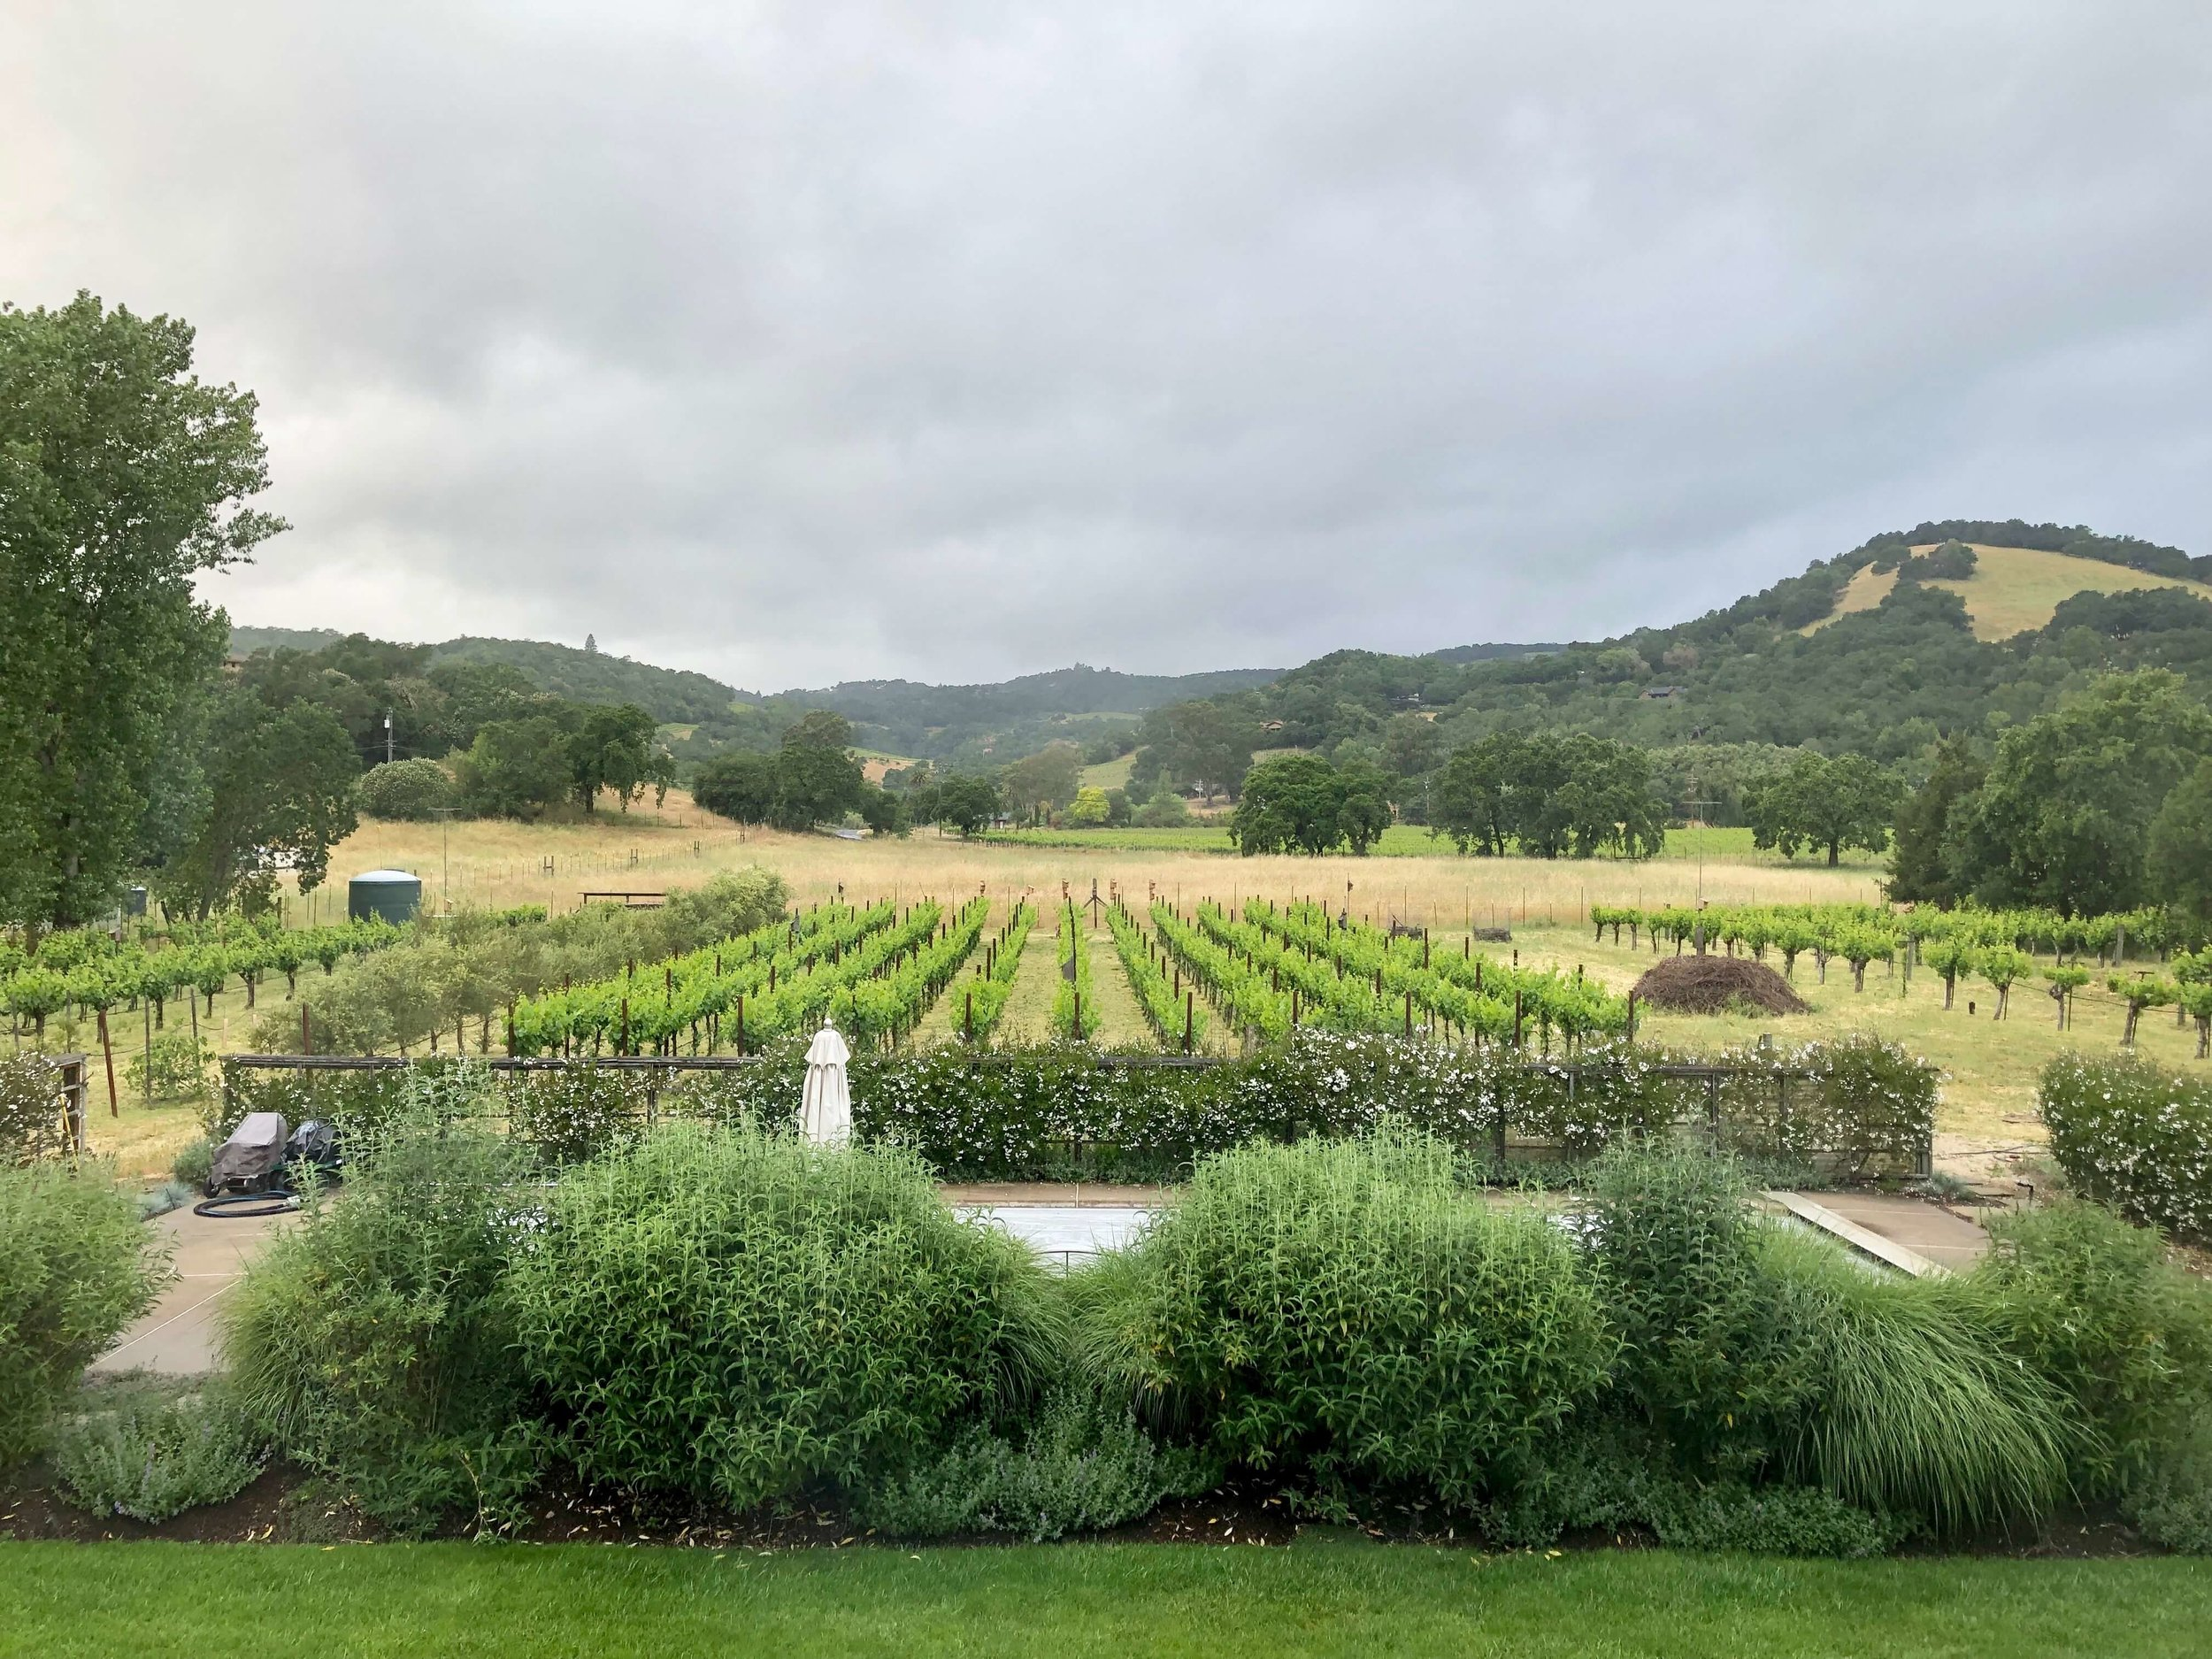 Stunning view out the back door of our Airbnb rental in Sonoma. There is a pool just beyond the shrubbery and lawn. #airbnb #winecountry